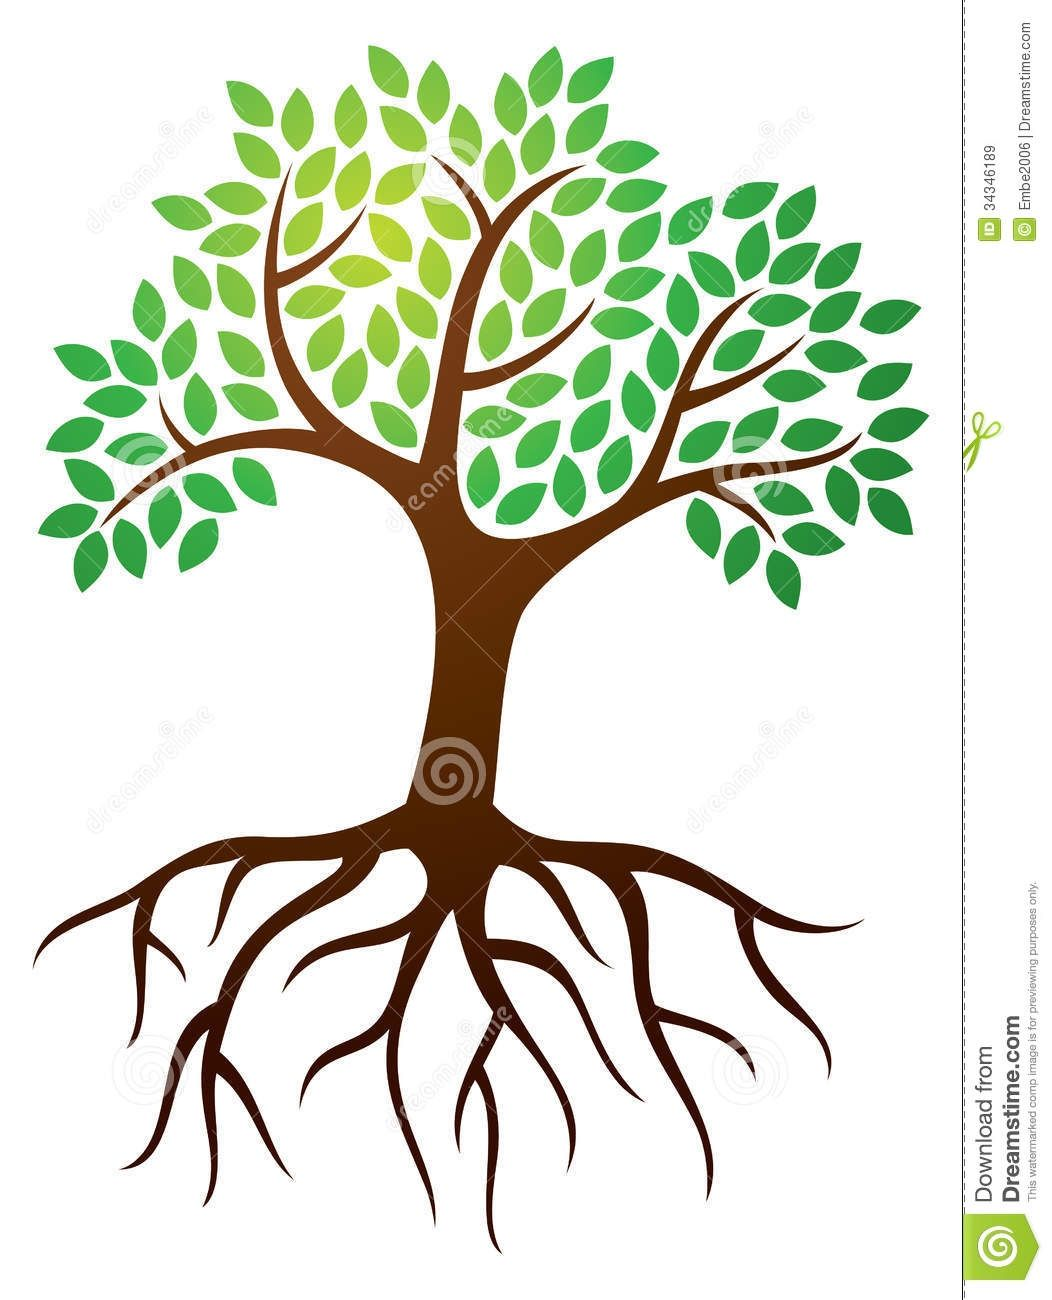 Clipart Of Trees With Roots.